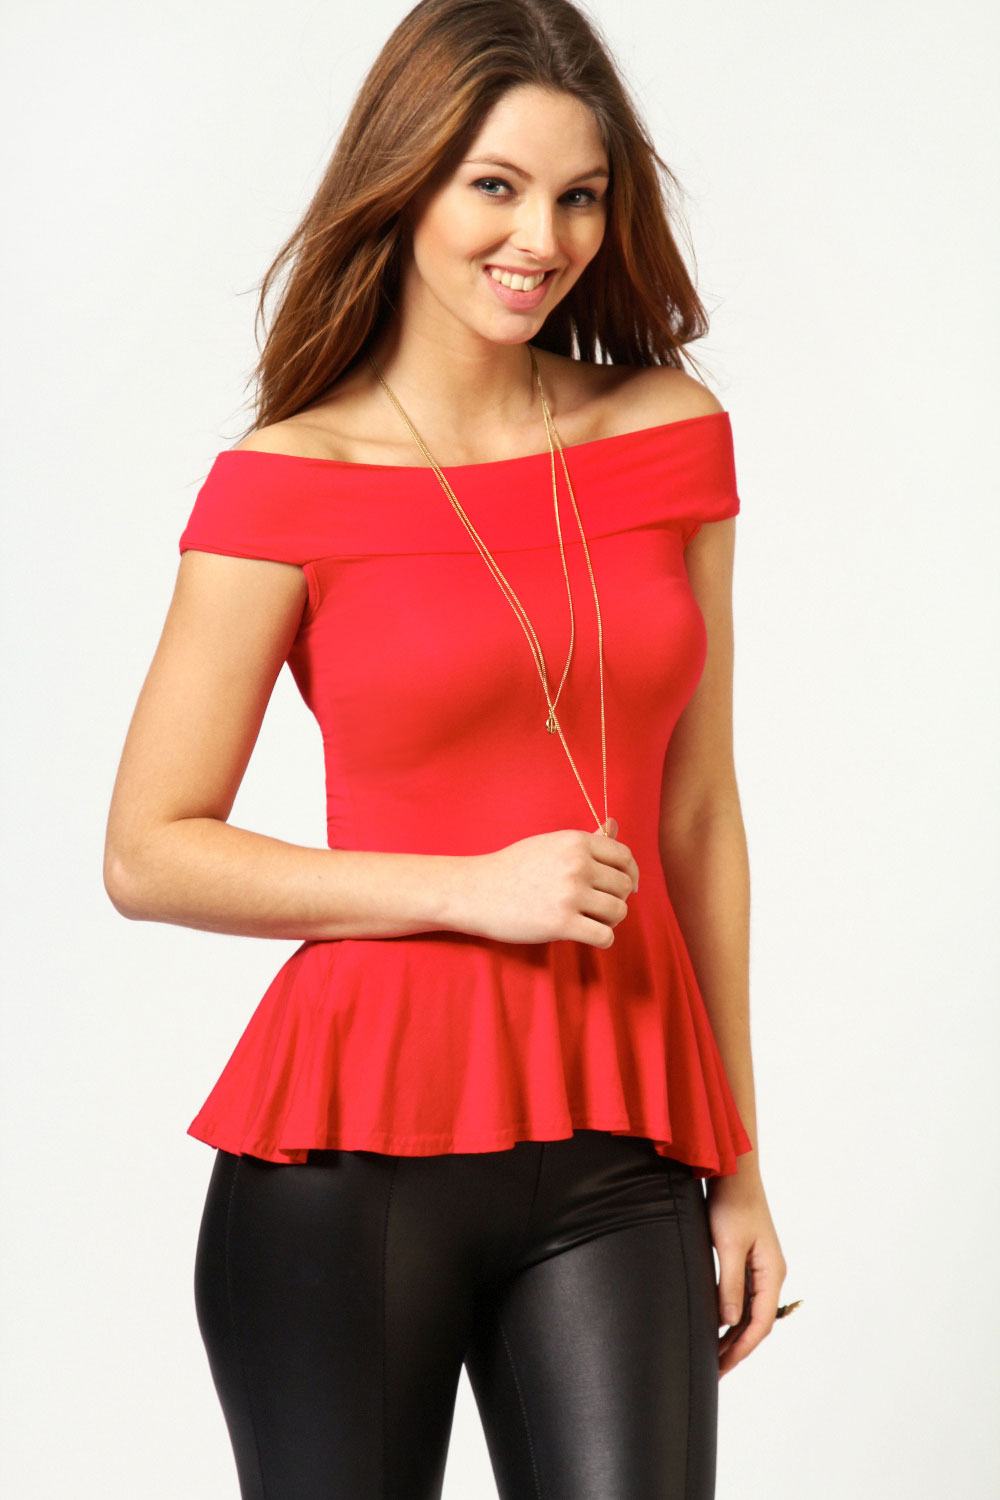 LURAP (Love UR APpearance) is a renowned online women clothing store and a great place to pick the best variety in ladies tops online in India along with all other kinds of latest and trendy varieties for girls and ladies.